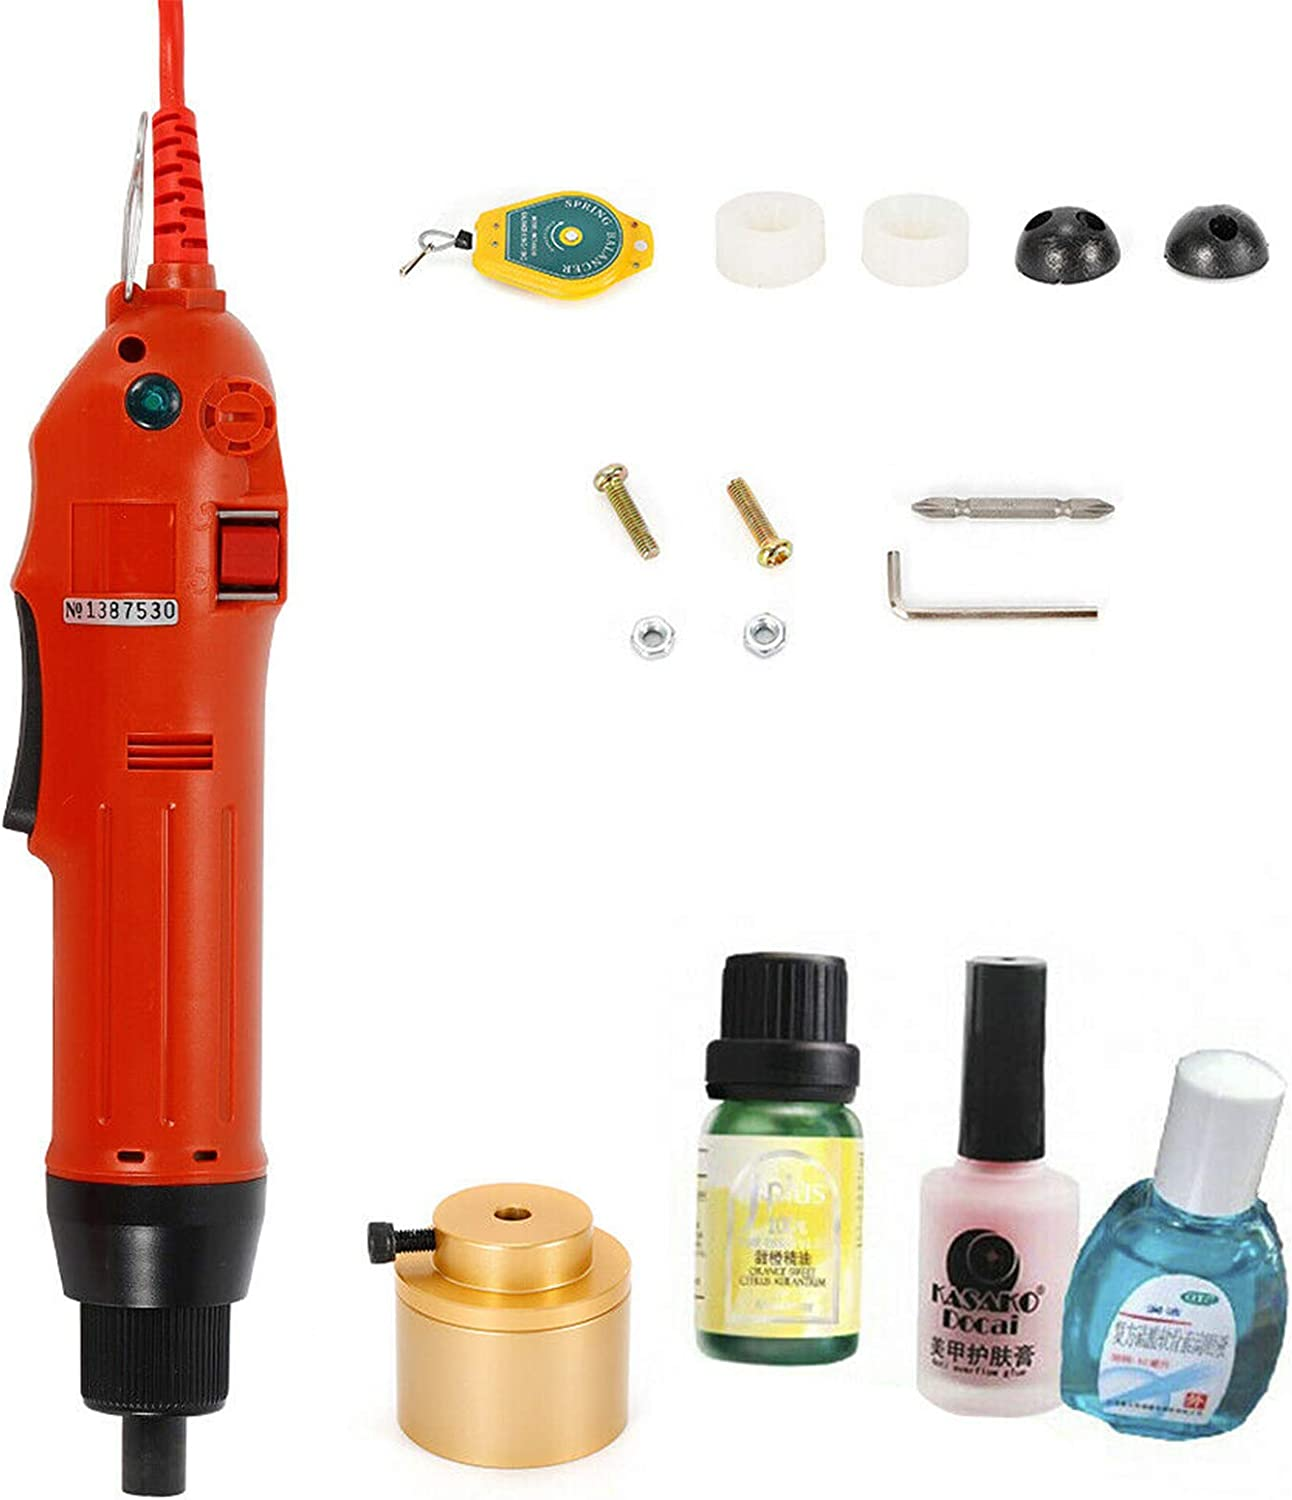 Handheld 70% OFF Outlet Electric Bottle Capping Machine Screw Sealin Manufacturer regenerated product Cap Capper